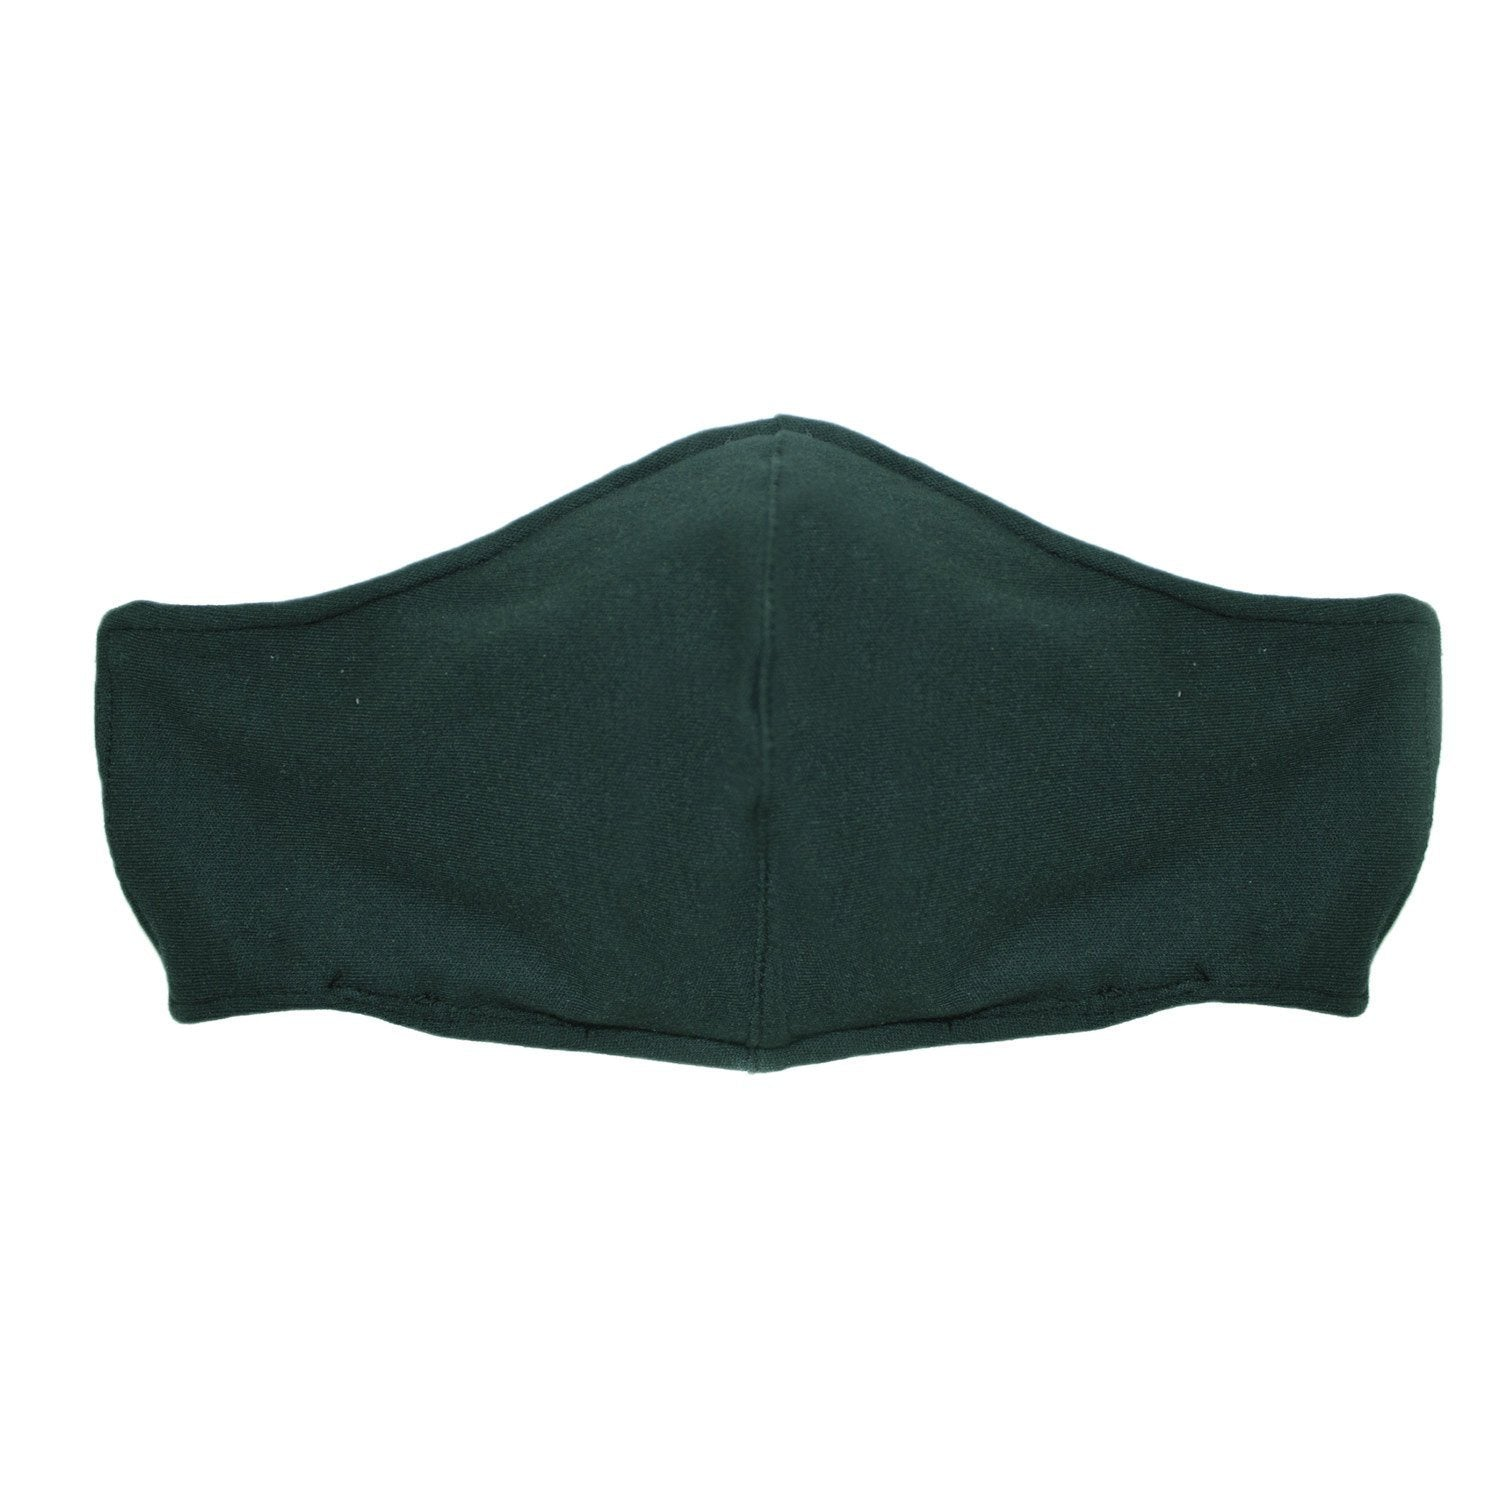 The Adesso Face Mask Charity Adesso Accessories Pine Green S